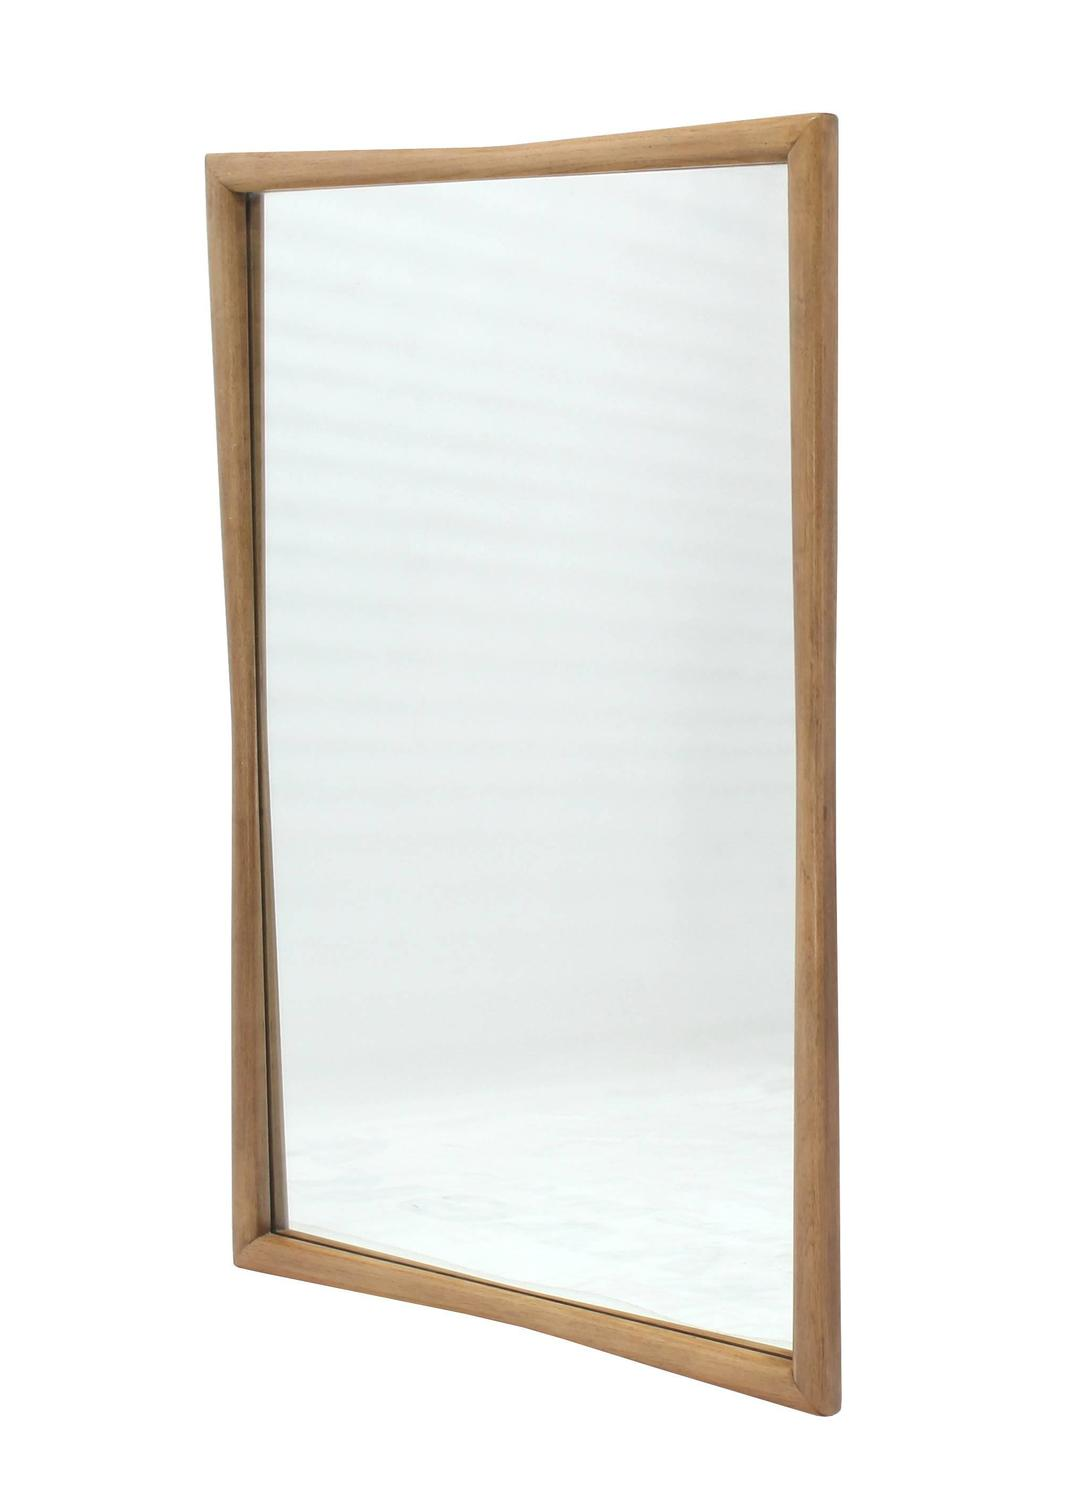 Large rectangular mid century modern mirror at 1stdibs for Large contemporary mirrors